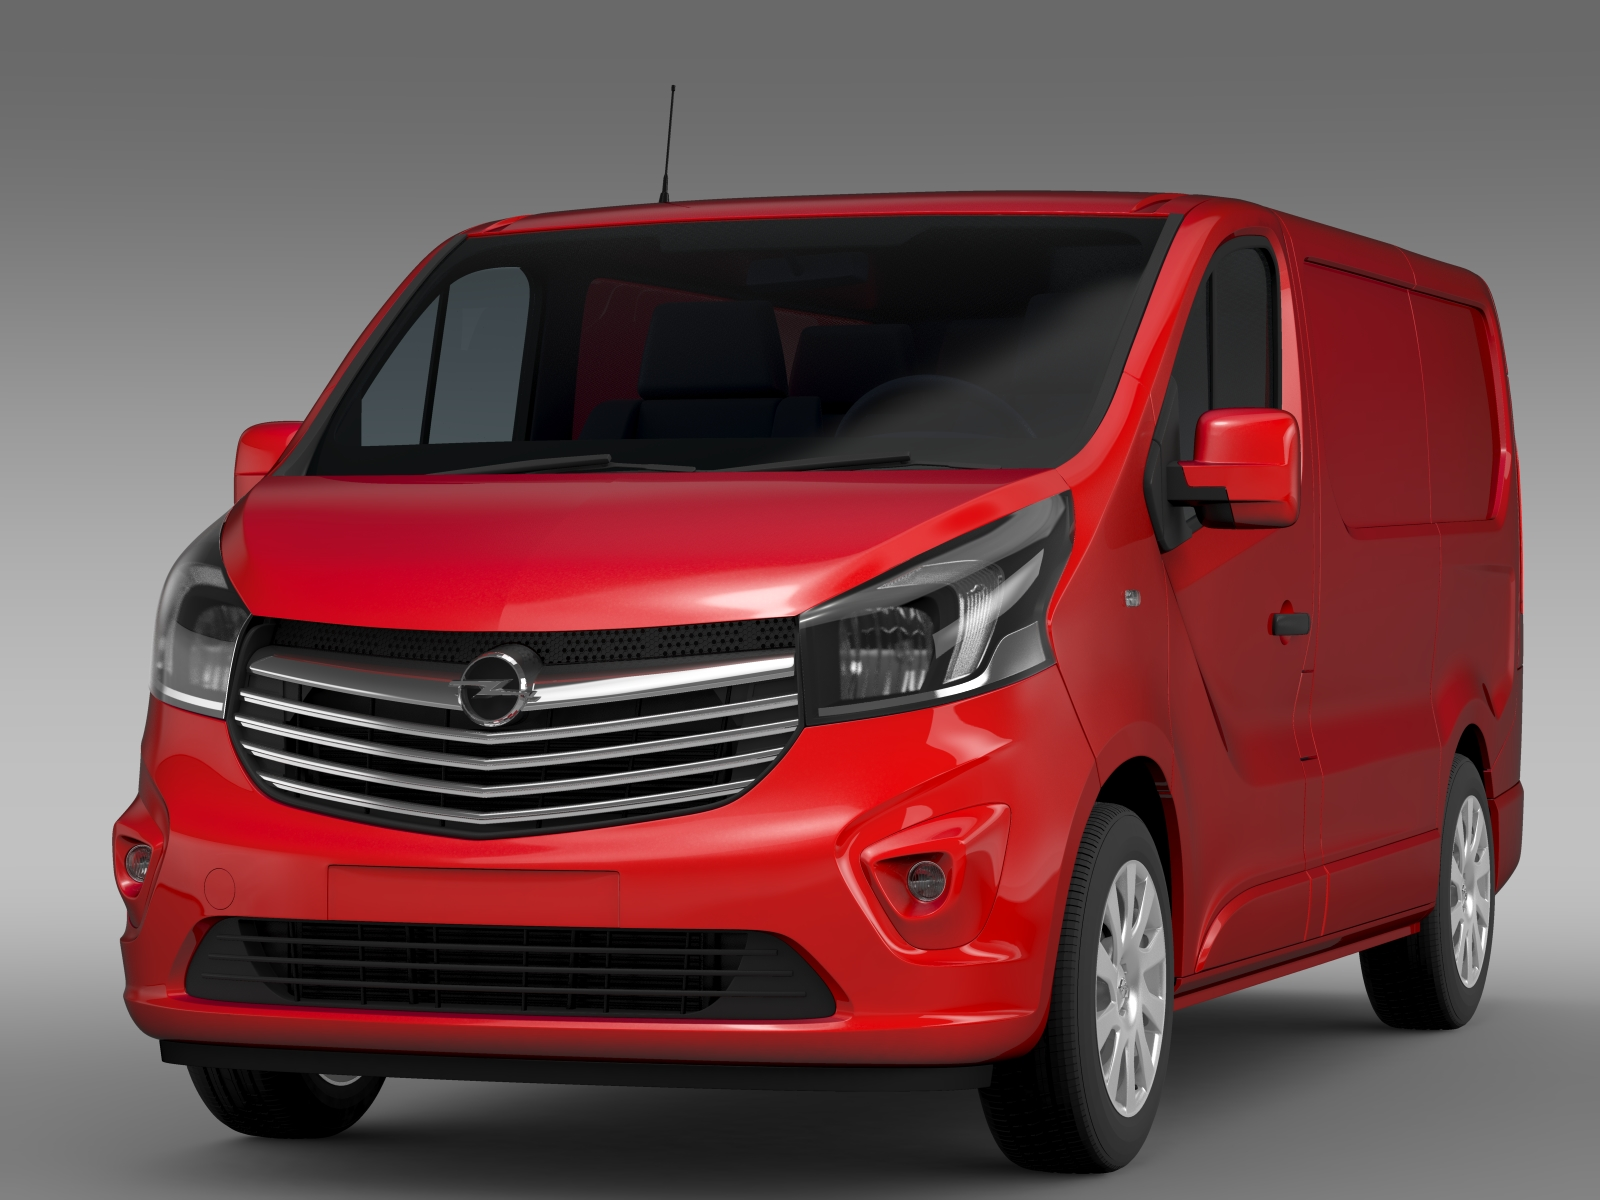 opel vivaro van biturbo 2015 3d model buy opel vivaro van biturbo 2015 3d model flatpyramid. Black Bedroom Furniture Sets. Home Design Ideas